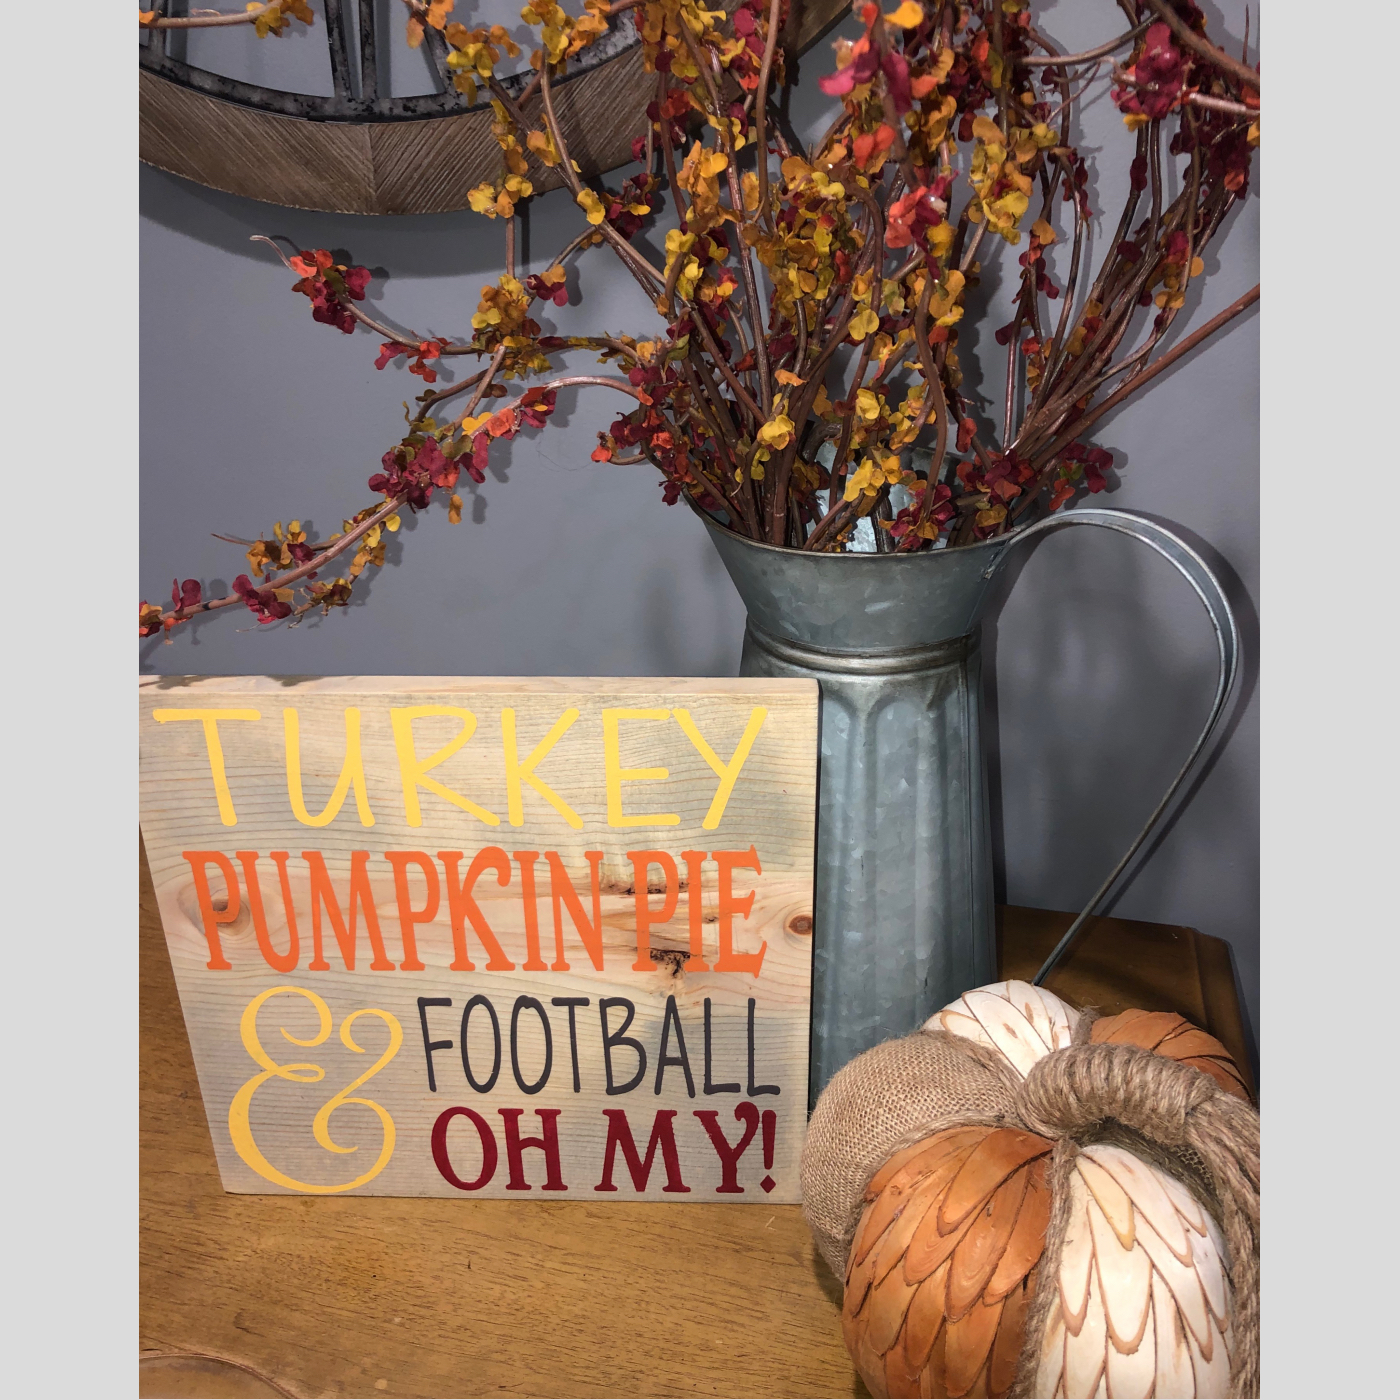 Turkey~Pumpkin Pie~& Football OH MY! DIY Wood Sign Bethlehem PA